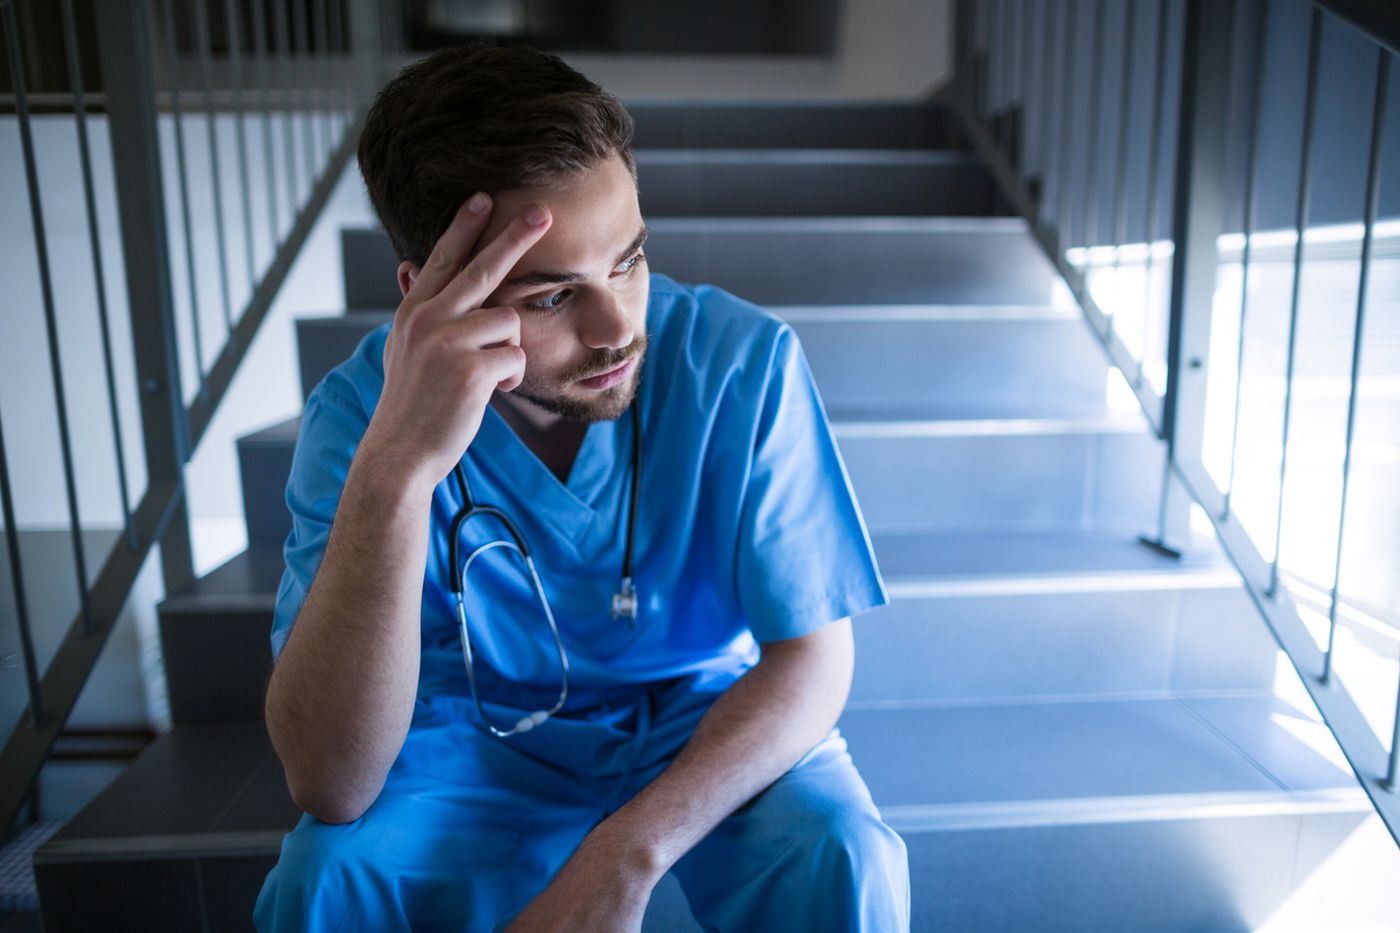 One in three nurses says patient safety 'unfavorable' at hospitals, Penn study finds